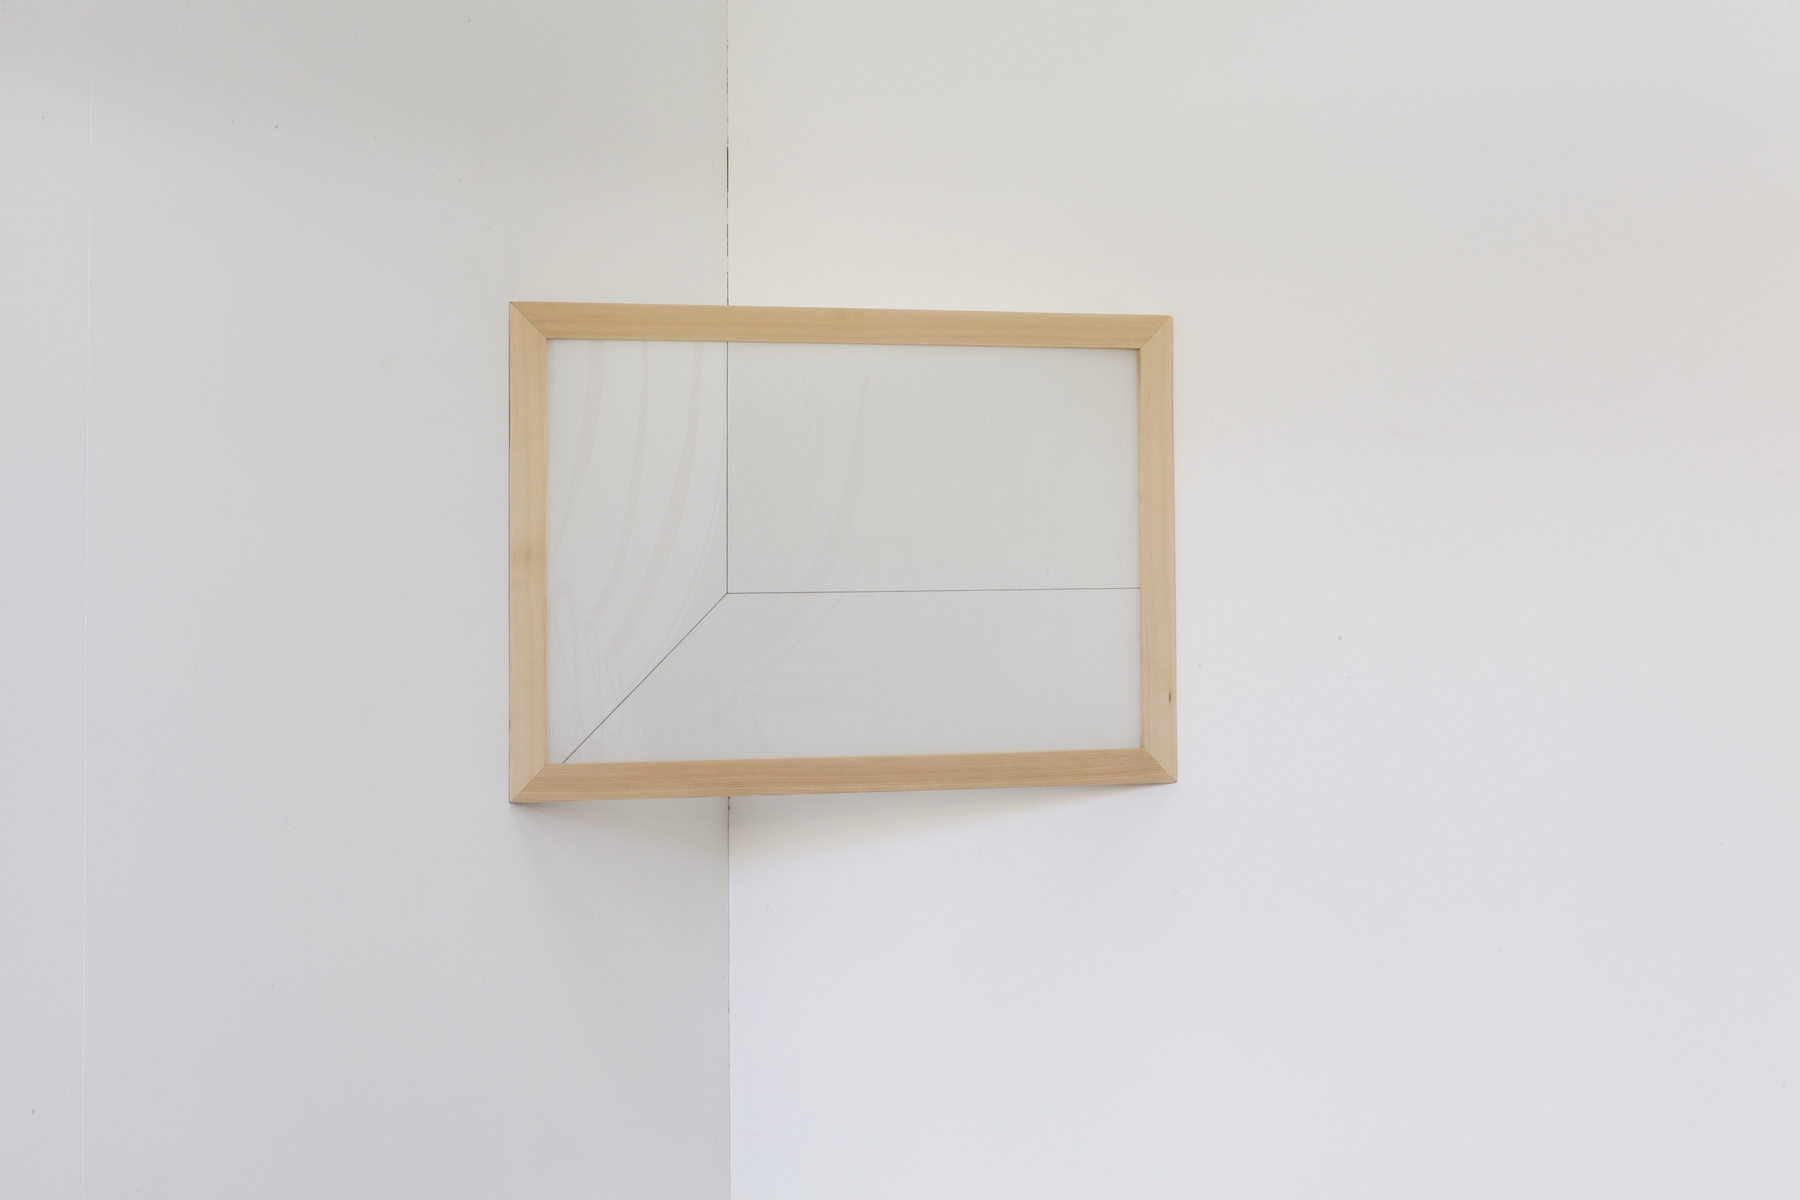 Josiah McElheny, 'Corner for Blinky Palermo', 2015, in 'The Corner Show', installation view, Extra City Kunsthal, 2015 © We Document Art